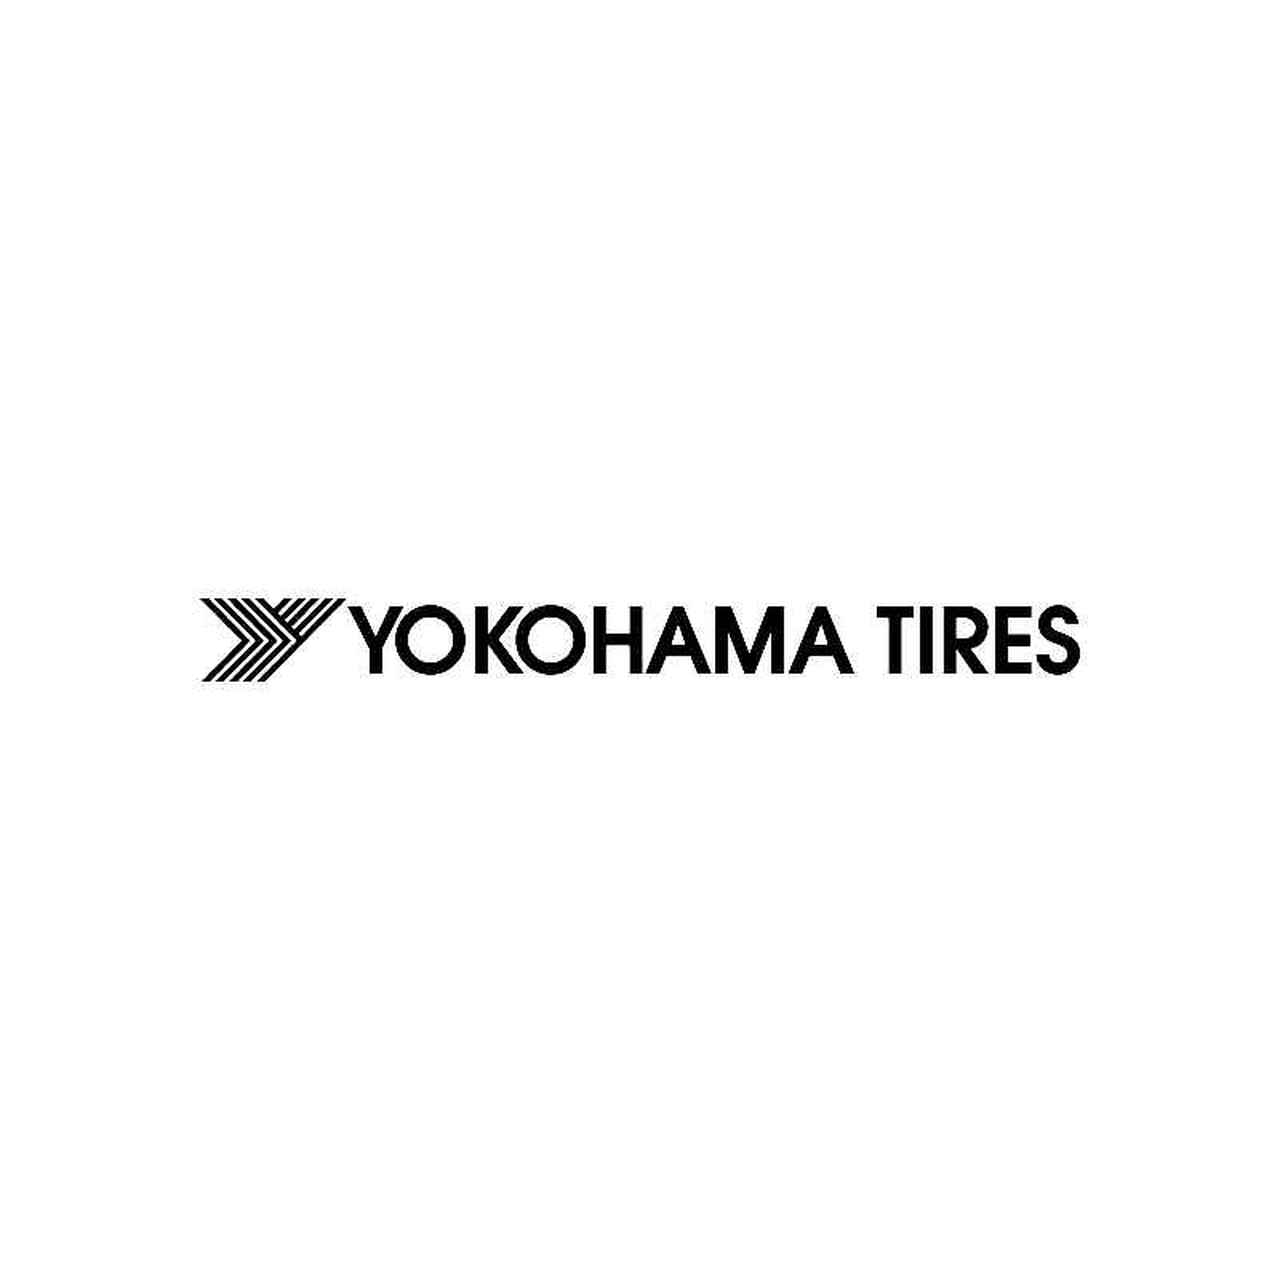 Yokohama Tires Logo Jdm Decal.